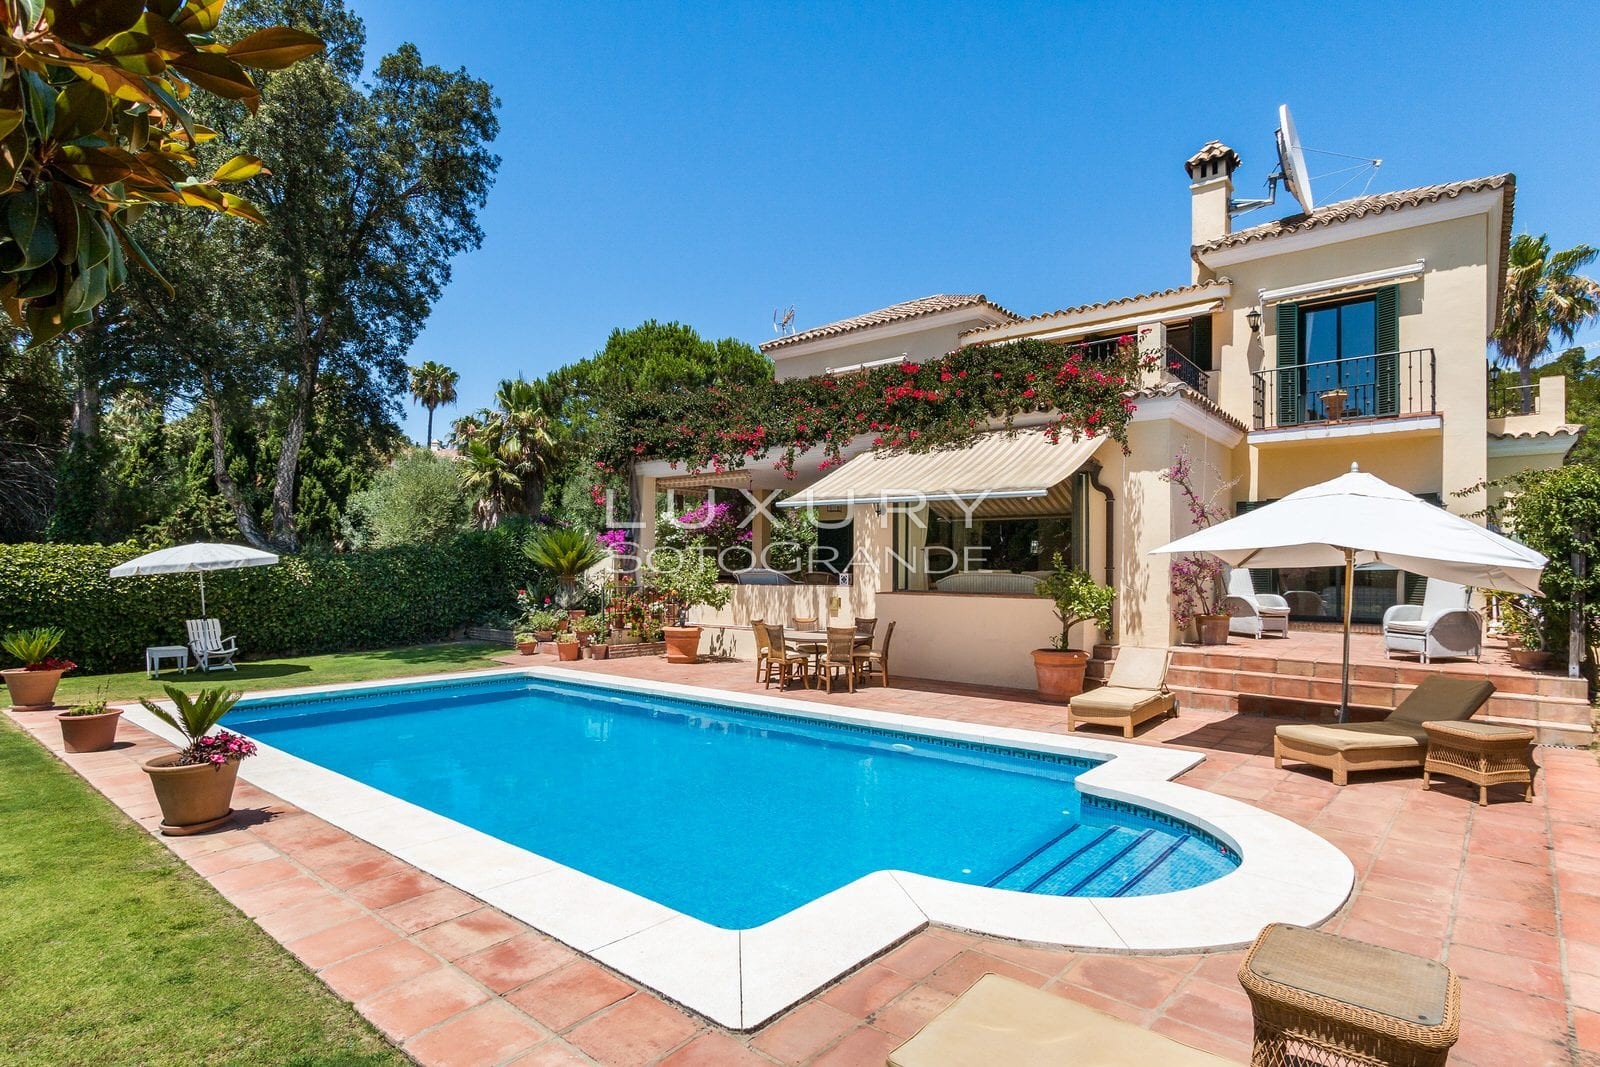 Lovely family Villa located in Sotogrande Alto for sale